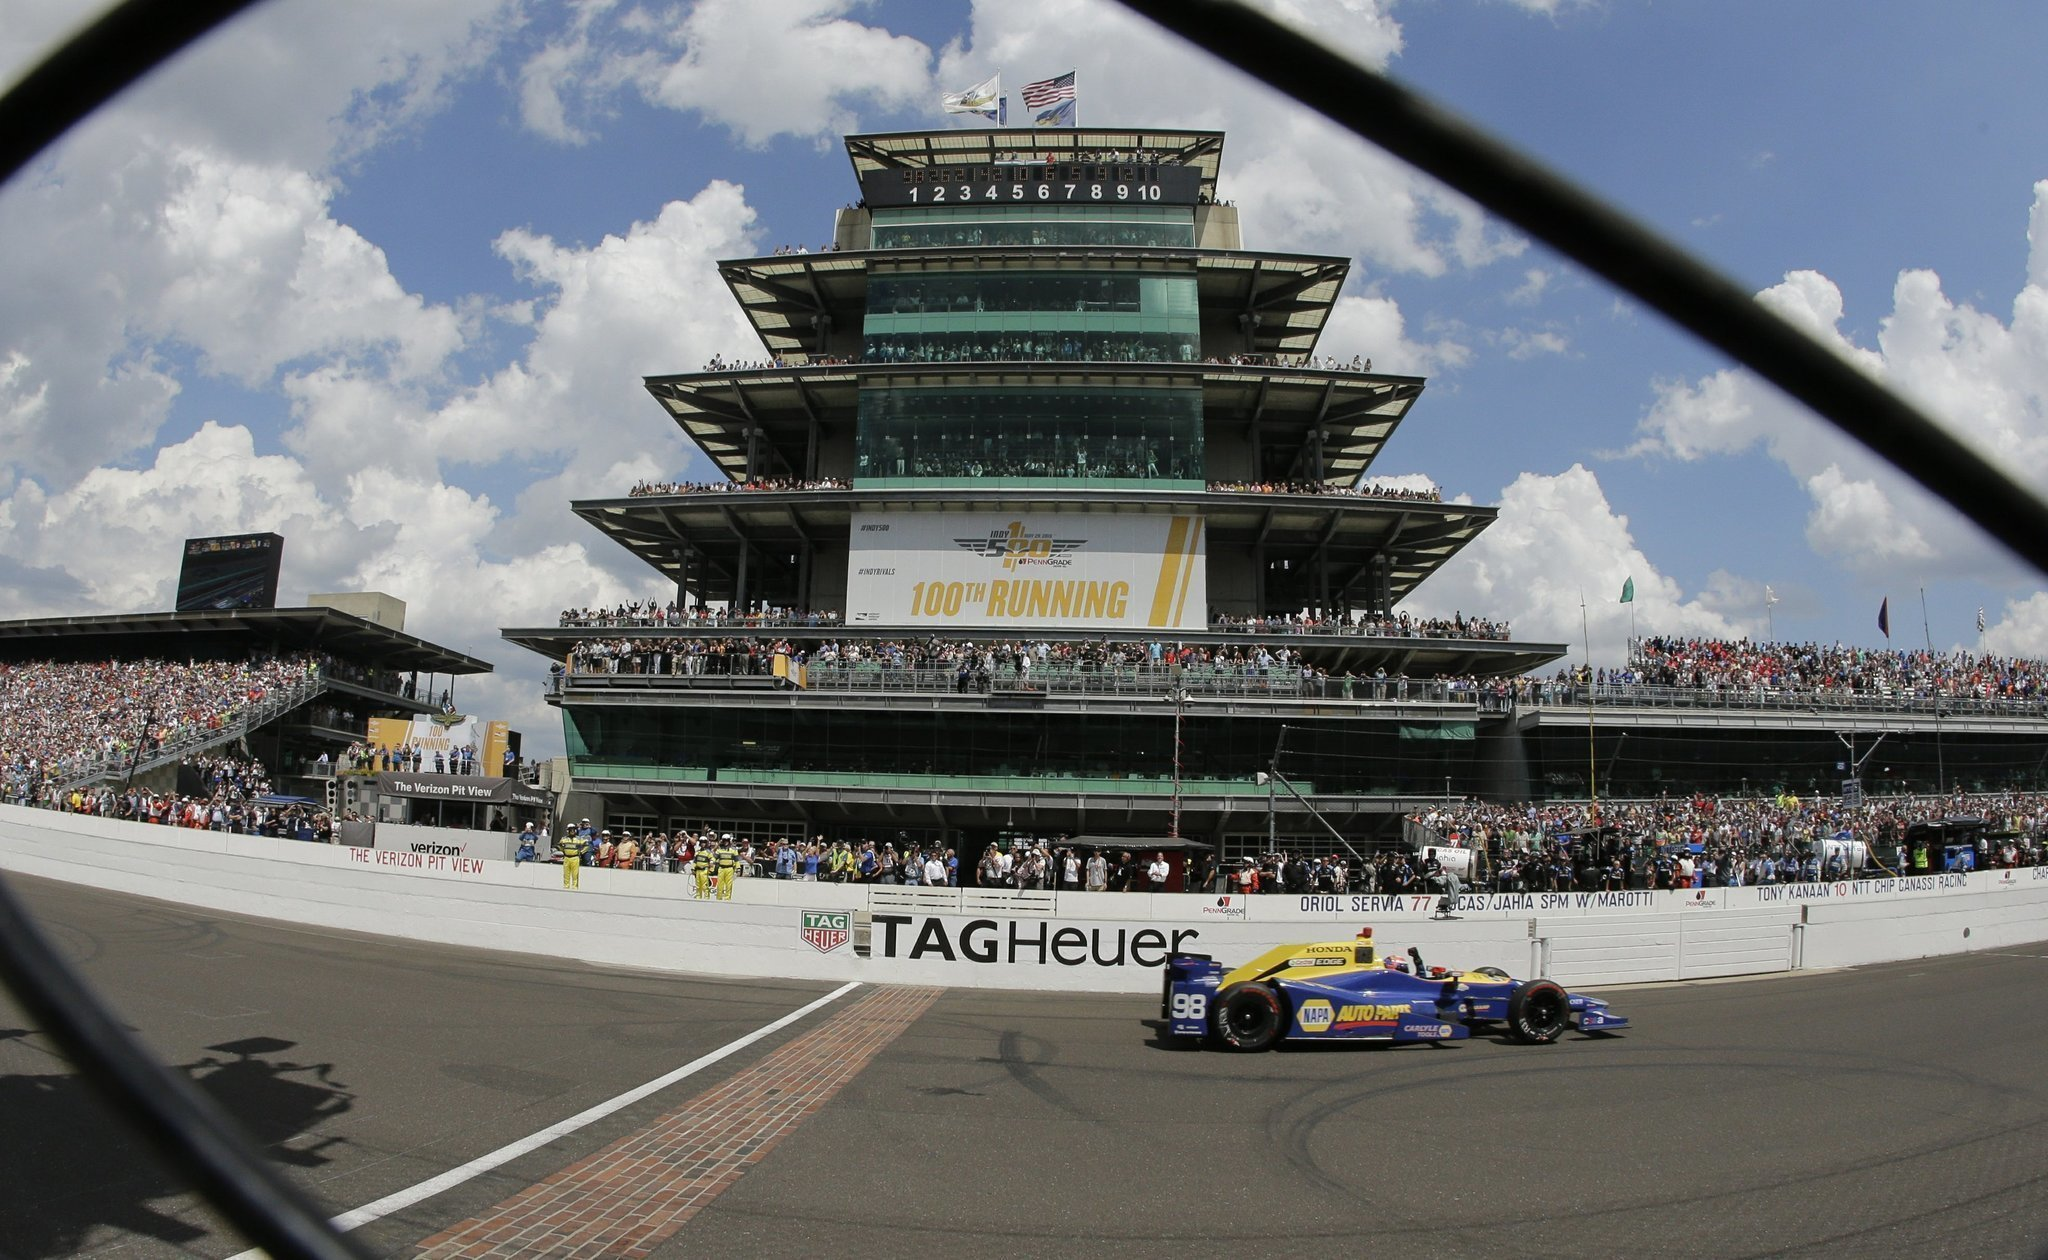 Highlights from the 100th running of the Indianapolis 500 The San